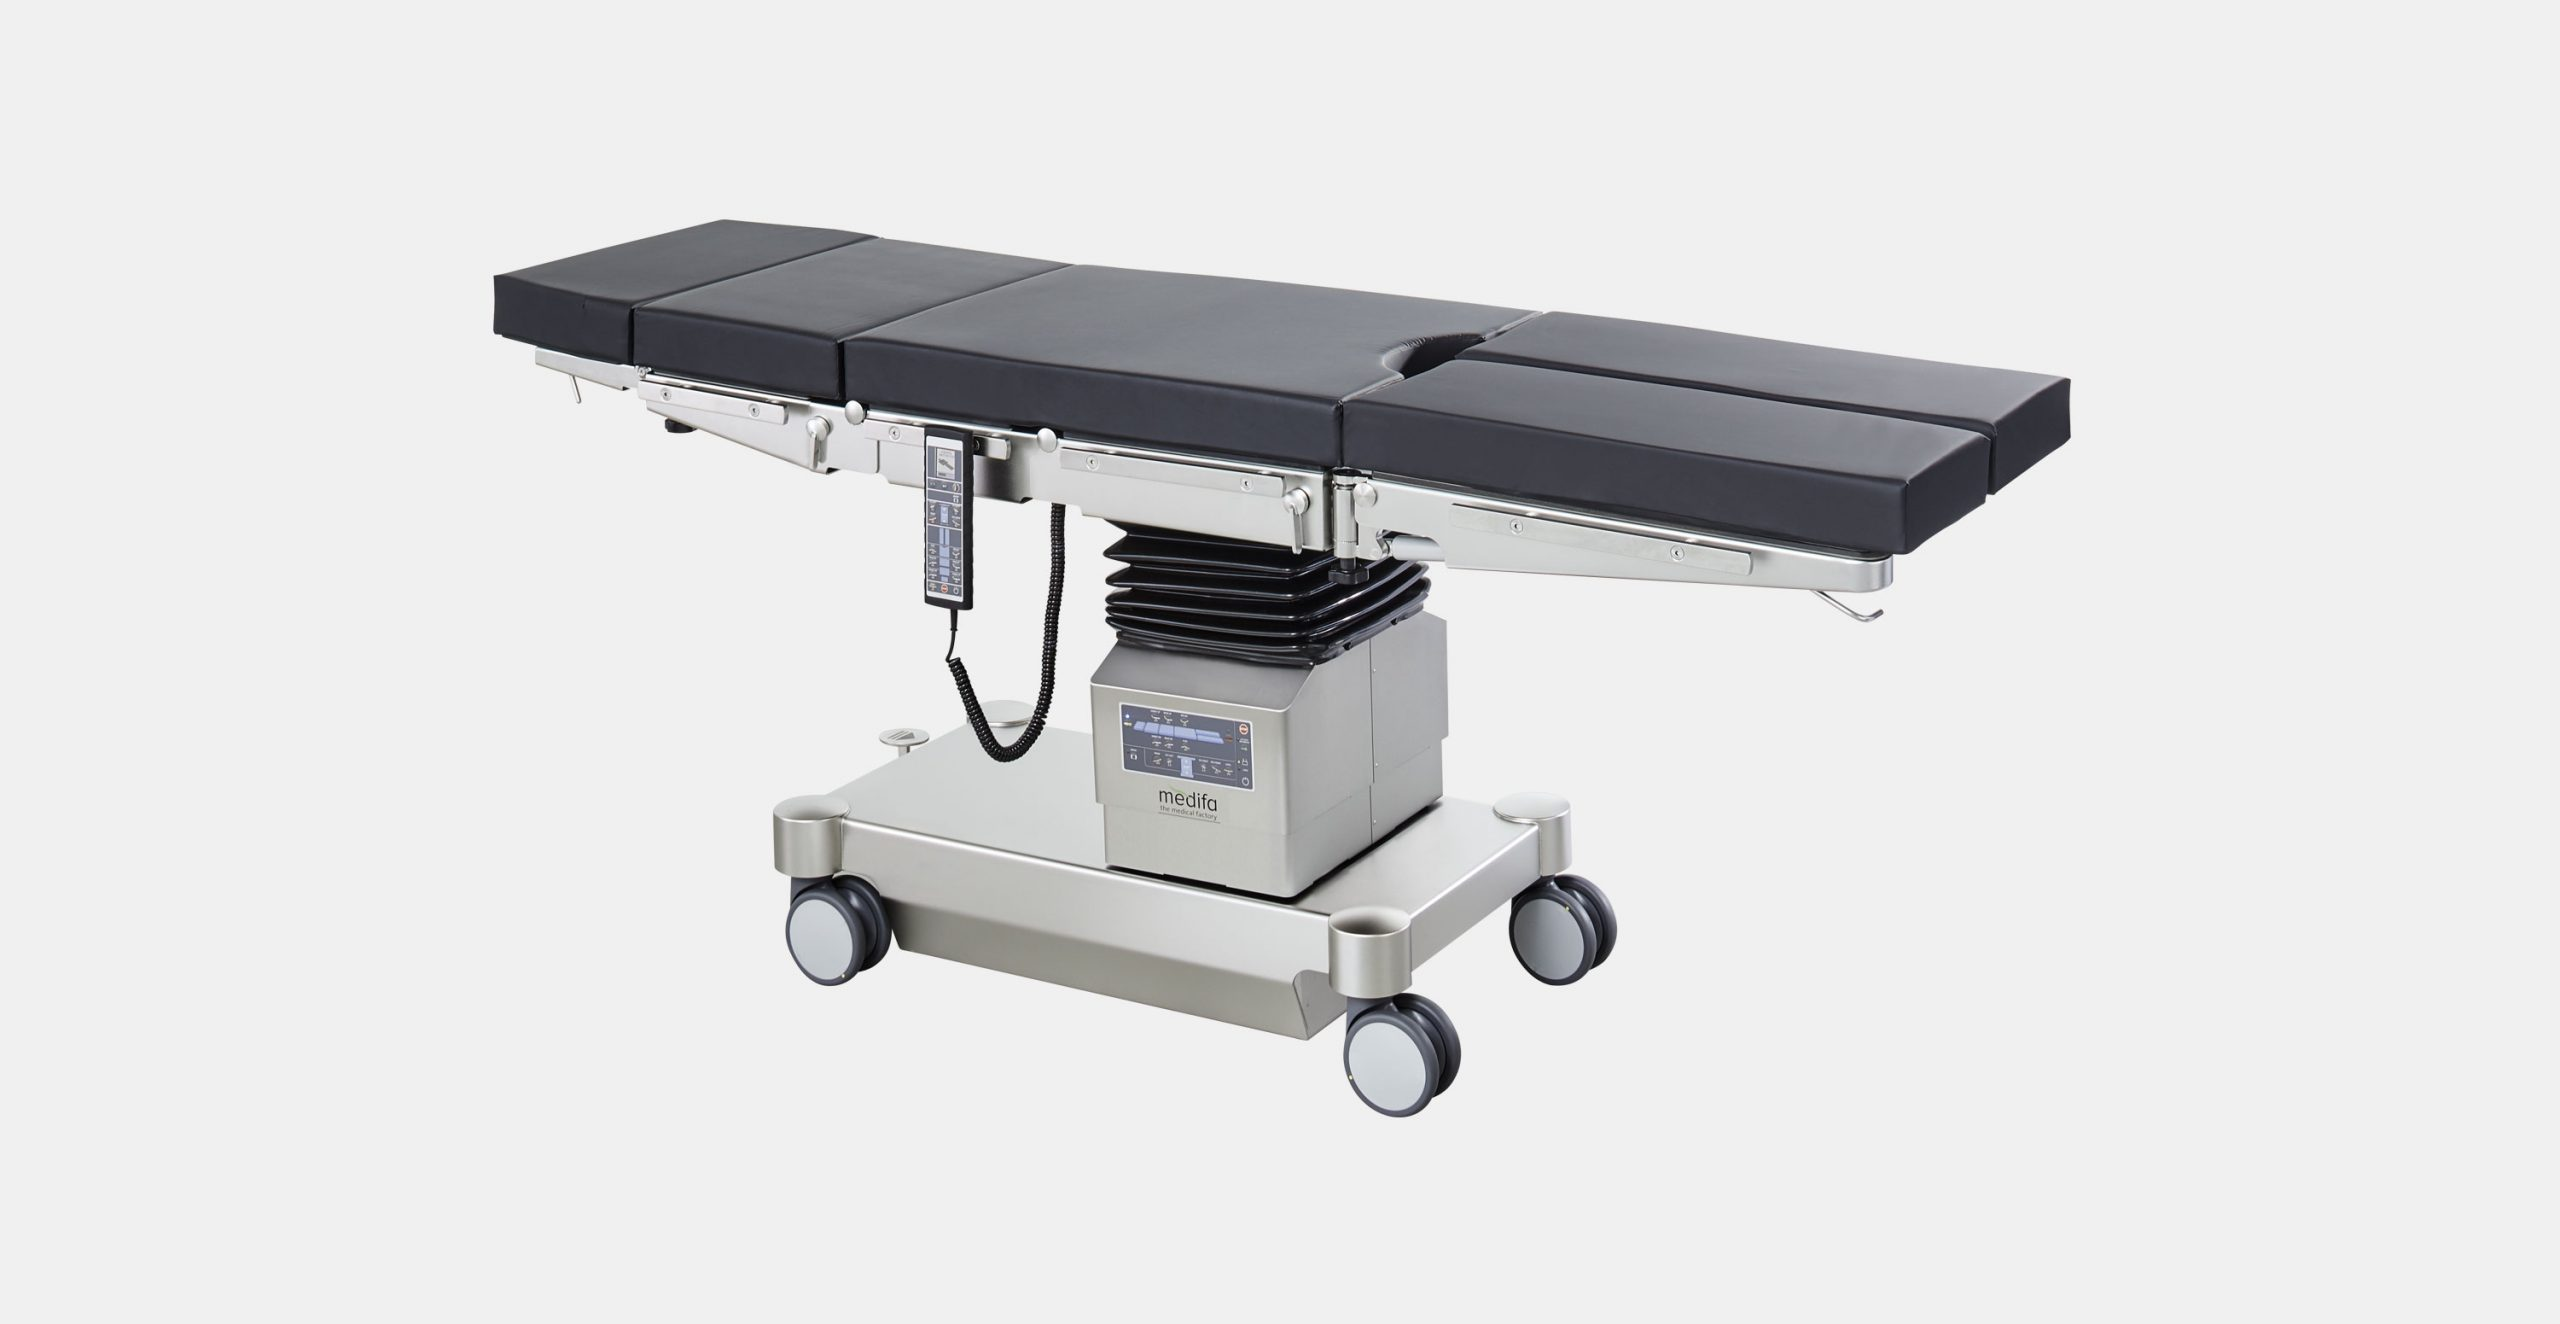 Mobile operating table with two electrohydraulical adjustable joint medifa 6000